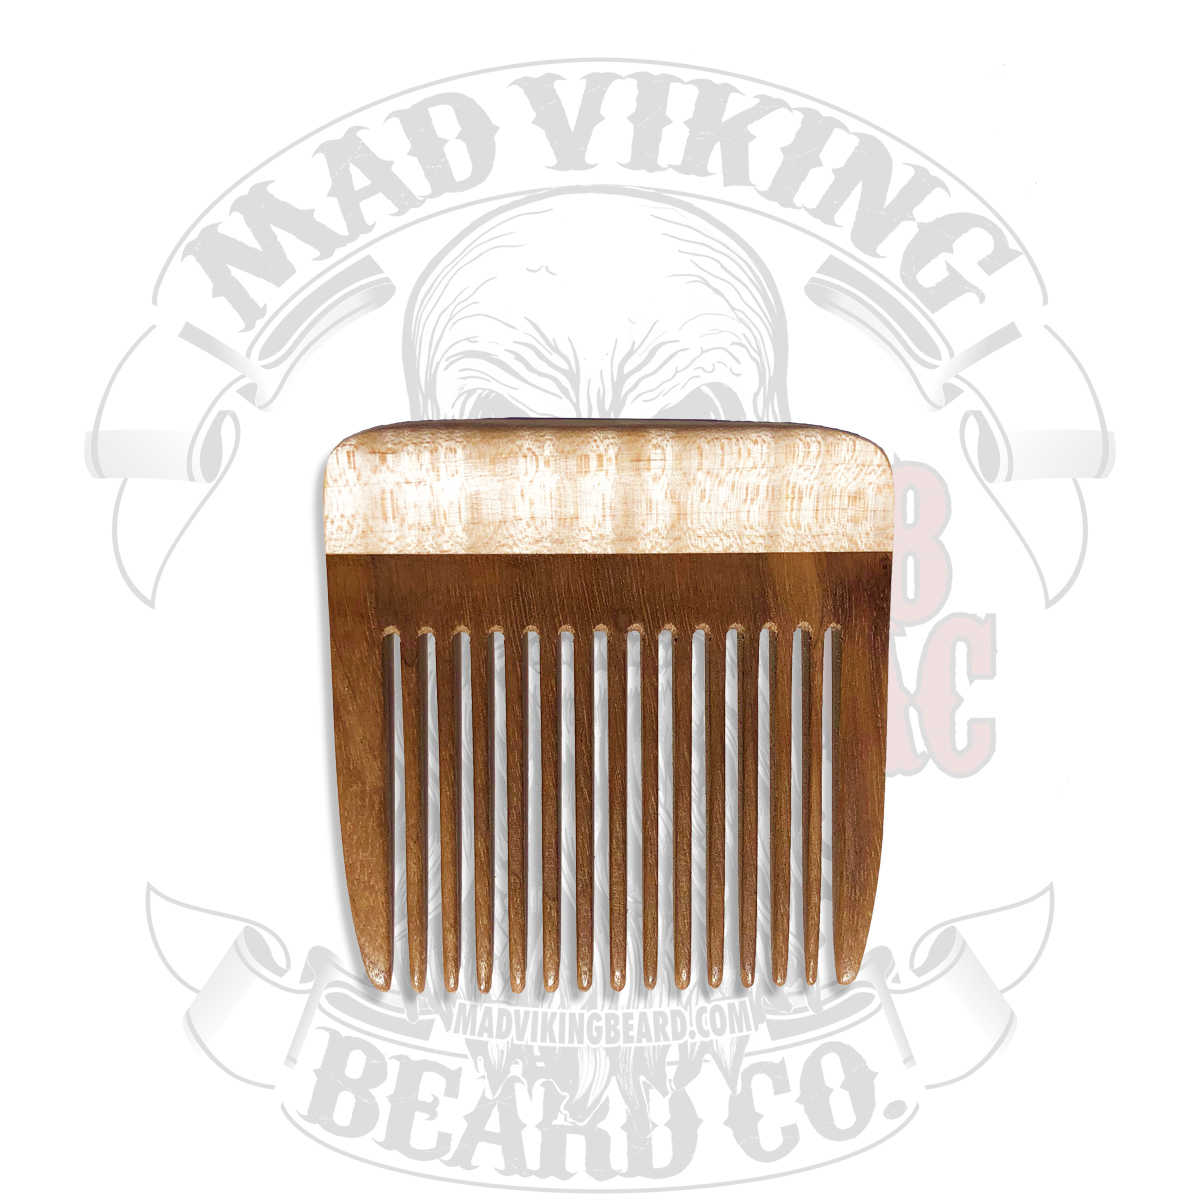 Beard Comb Pick - American Black Walnut with Curly Maple Grips